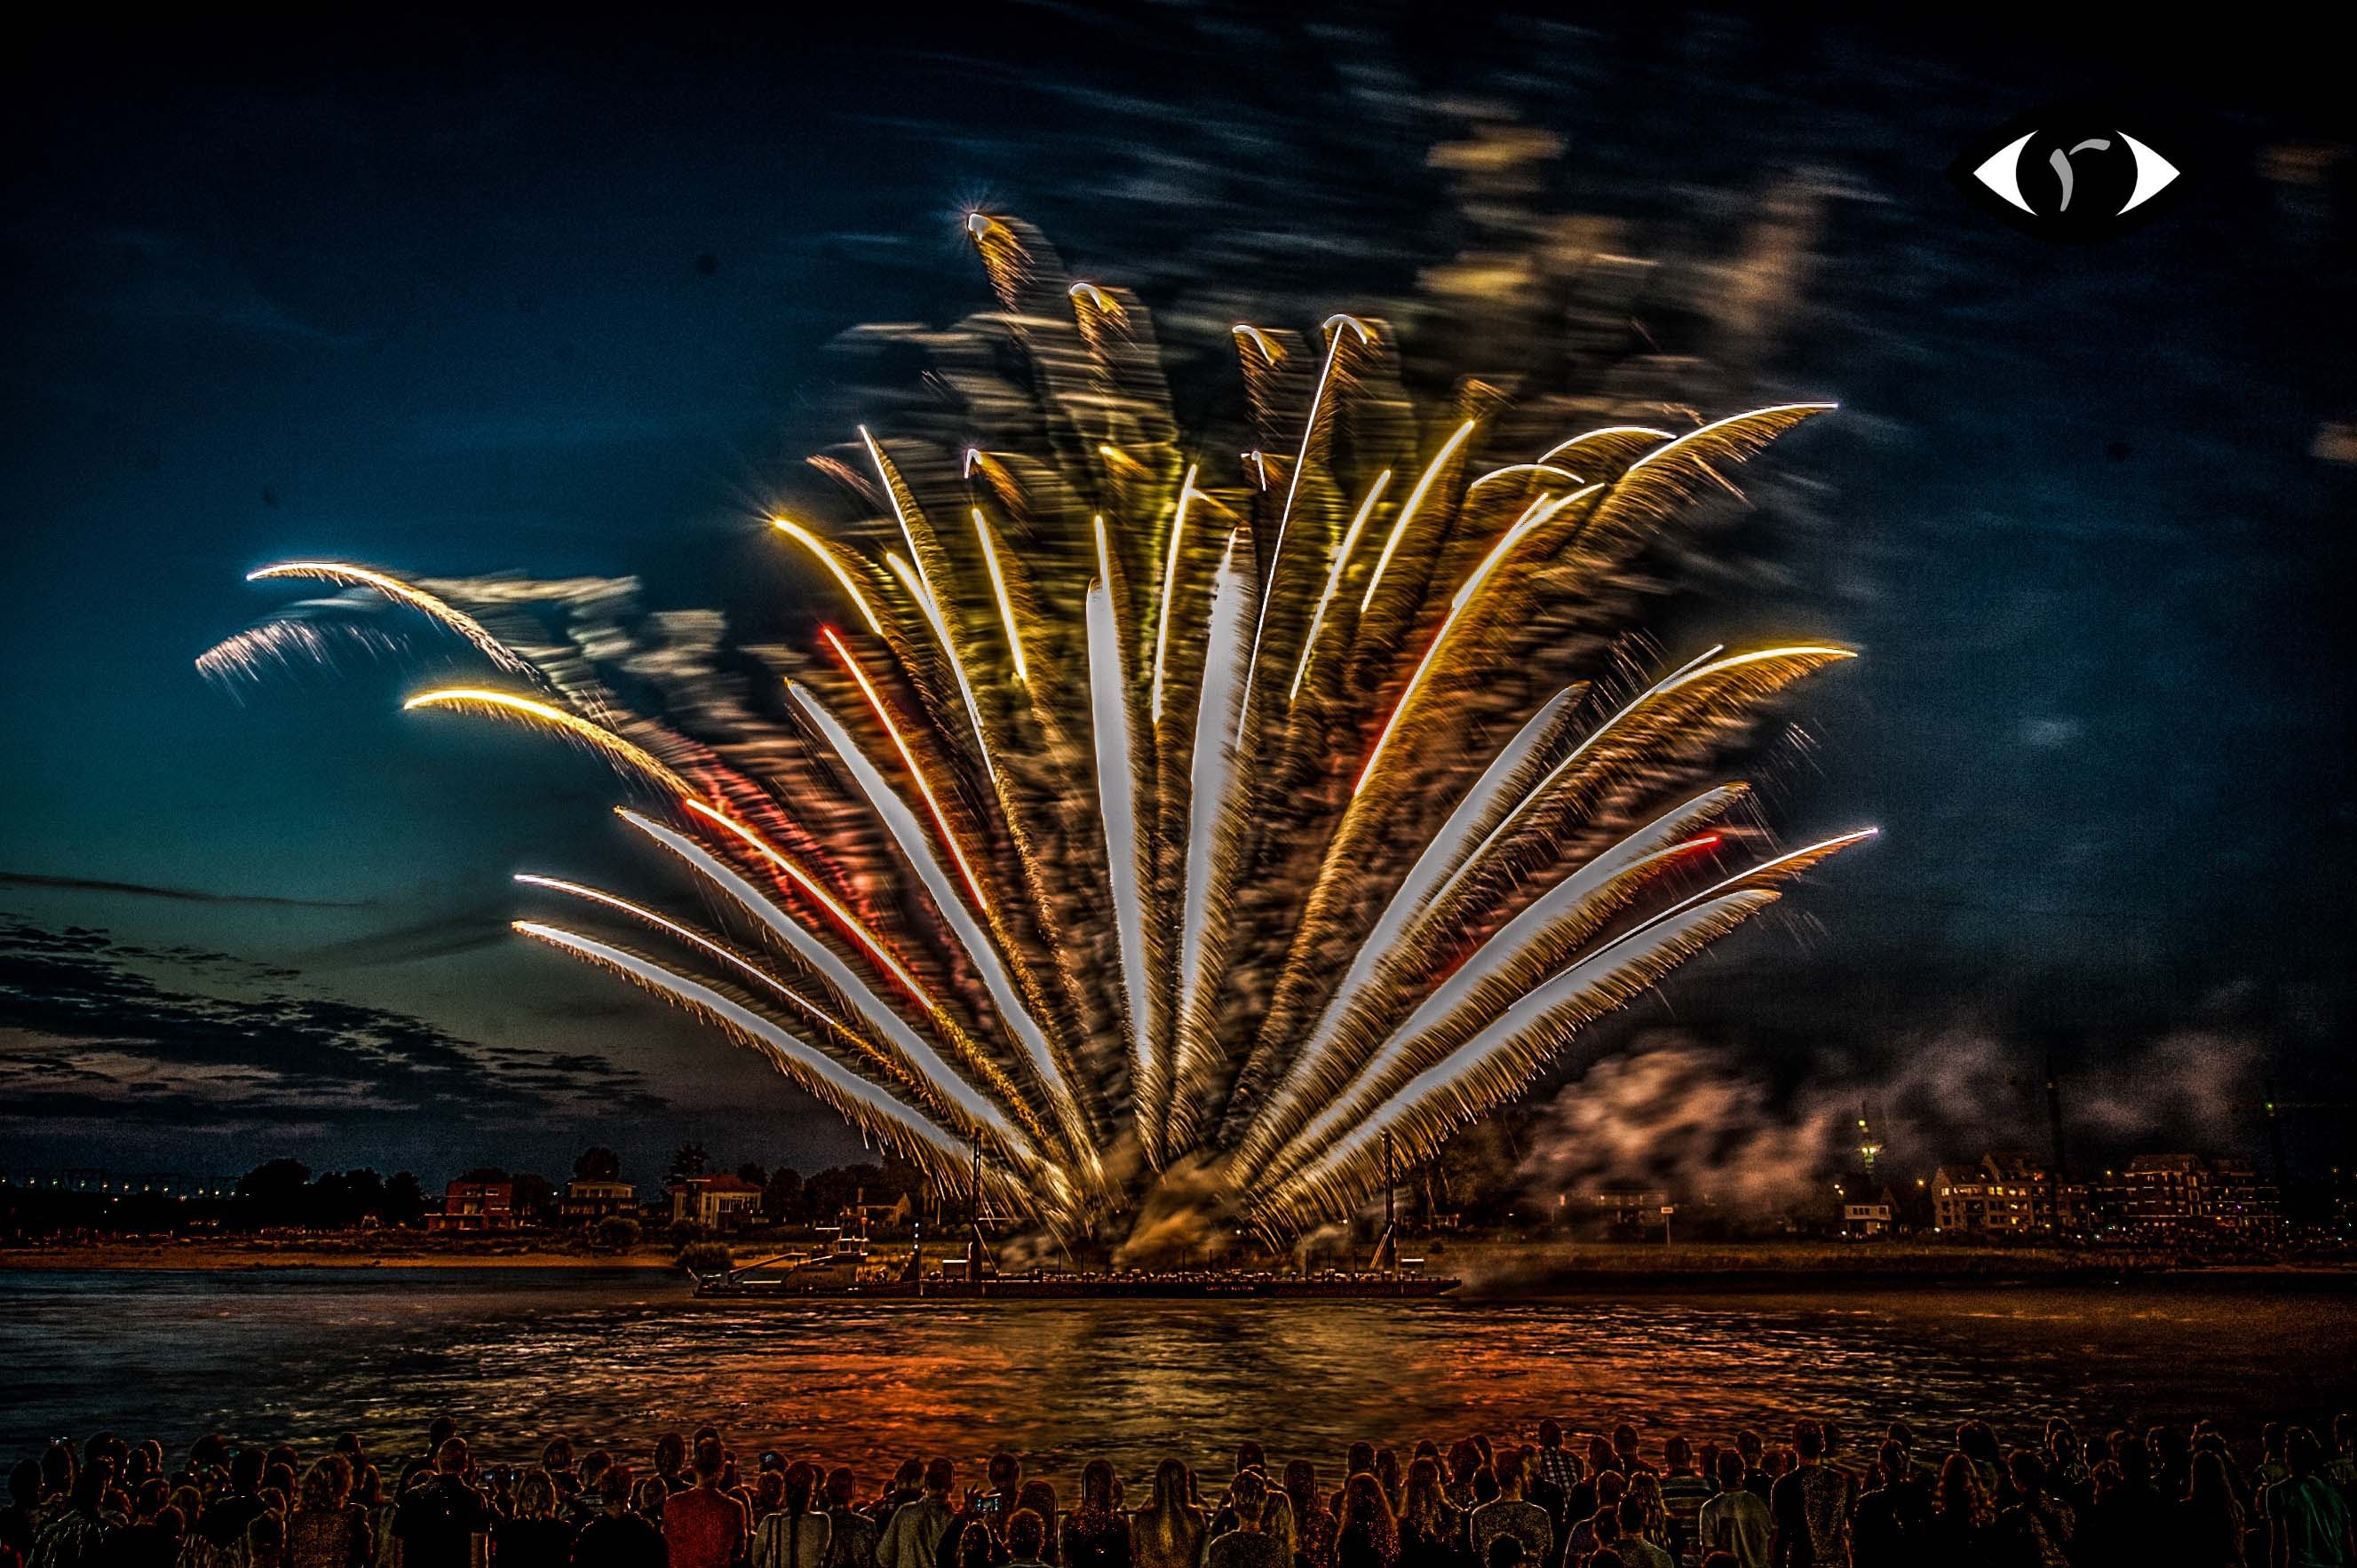 https://sites.google.com/site/ruurdjellema/hdr-b-w-touch-of-color/Fireworks.jpg